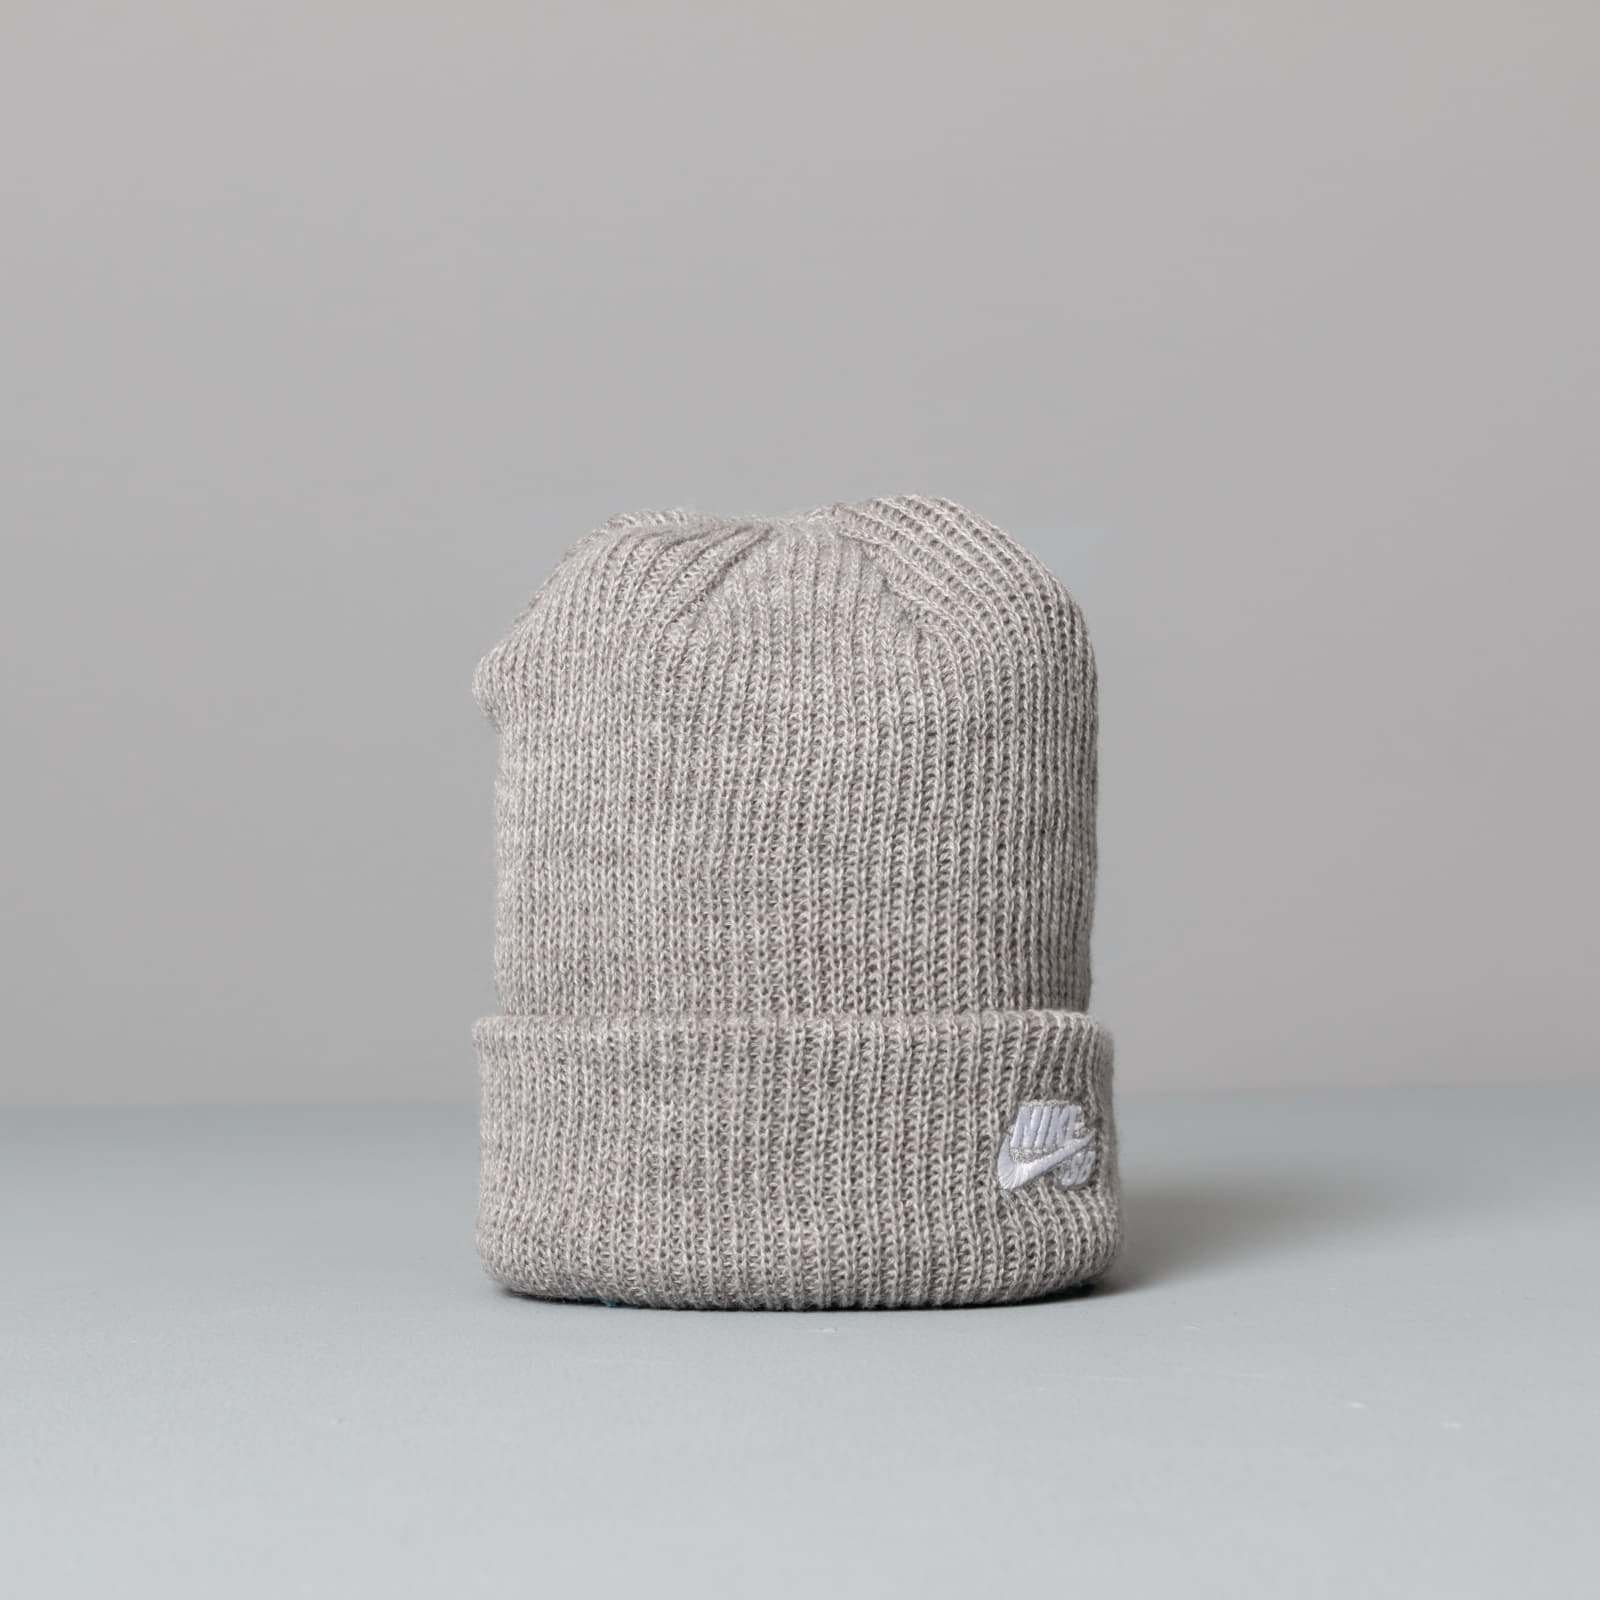 Σκουφιά Nike SB Fisherman Beanie Grey/ White